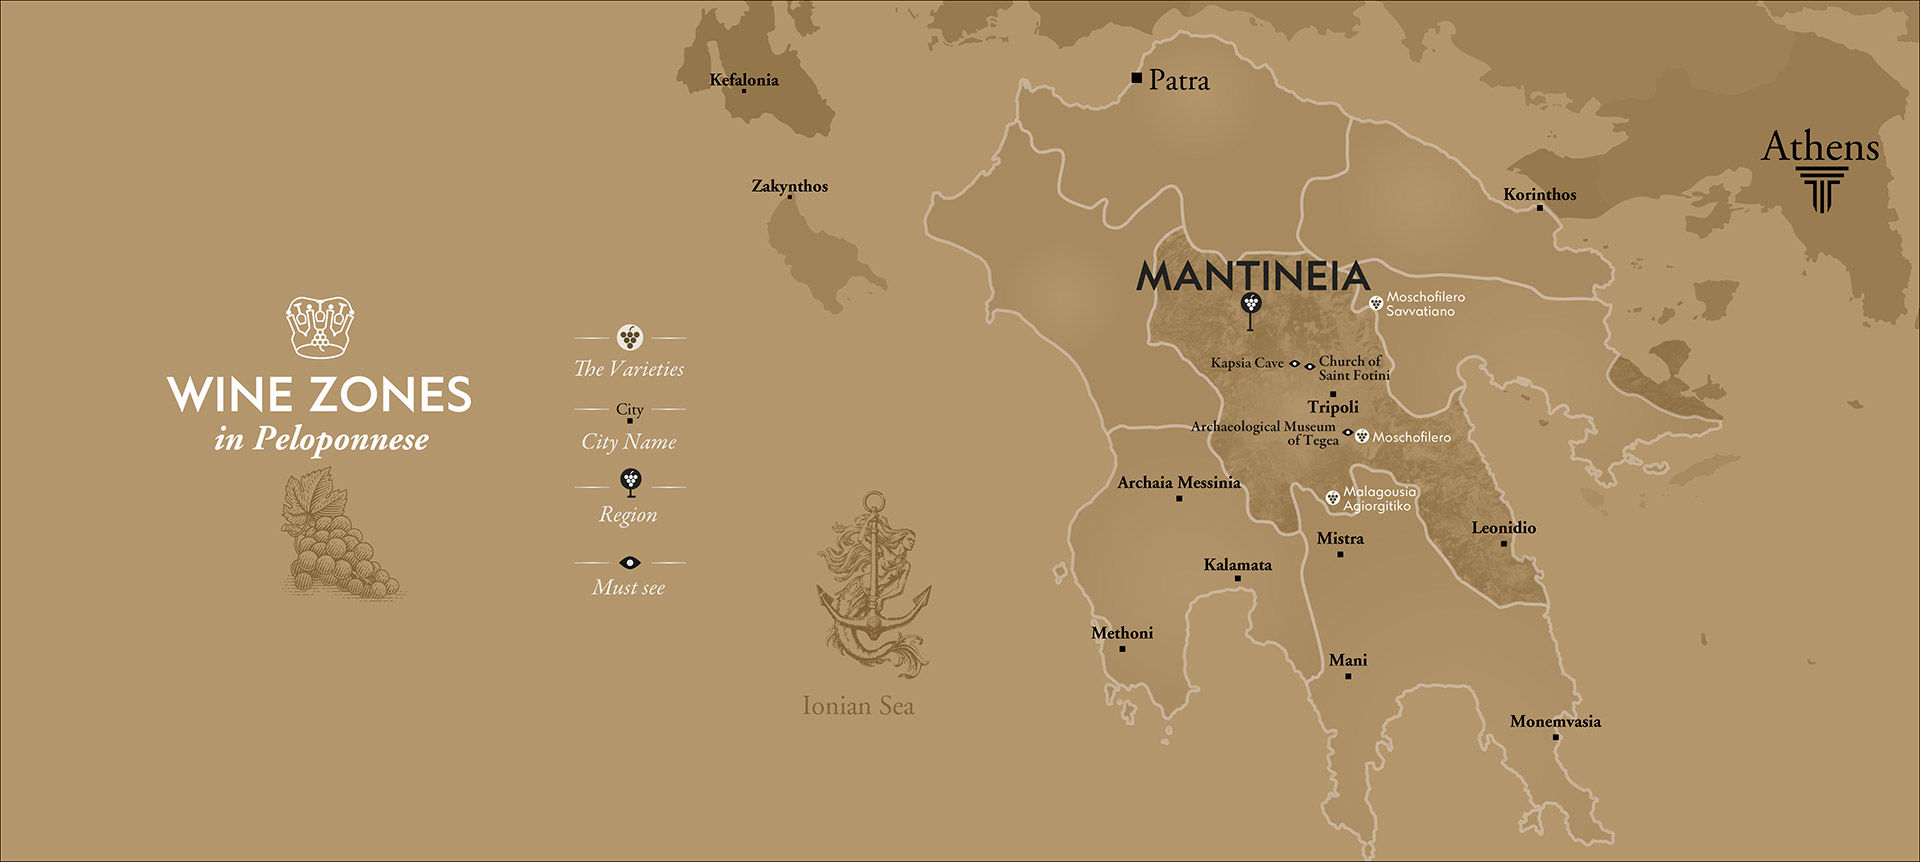 Peloponesse wine tour,Mantinia wine tour, Mochofilero wine, luxury wine tours Greece, visit Nemea , visit Nafplio